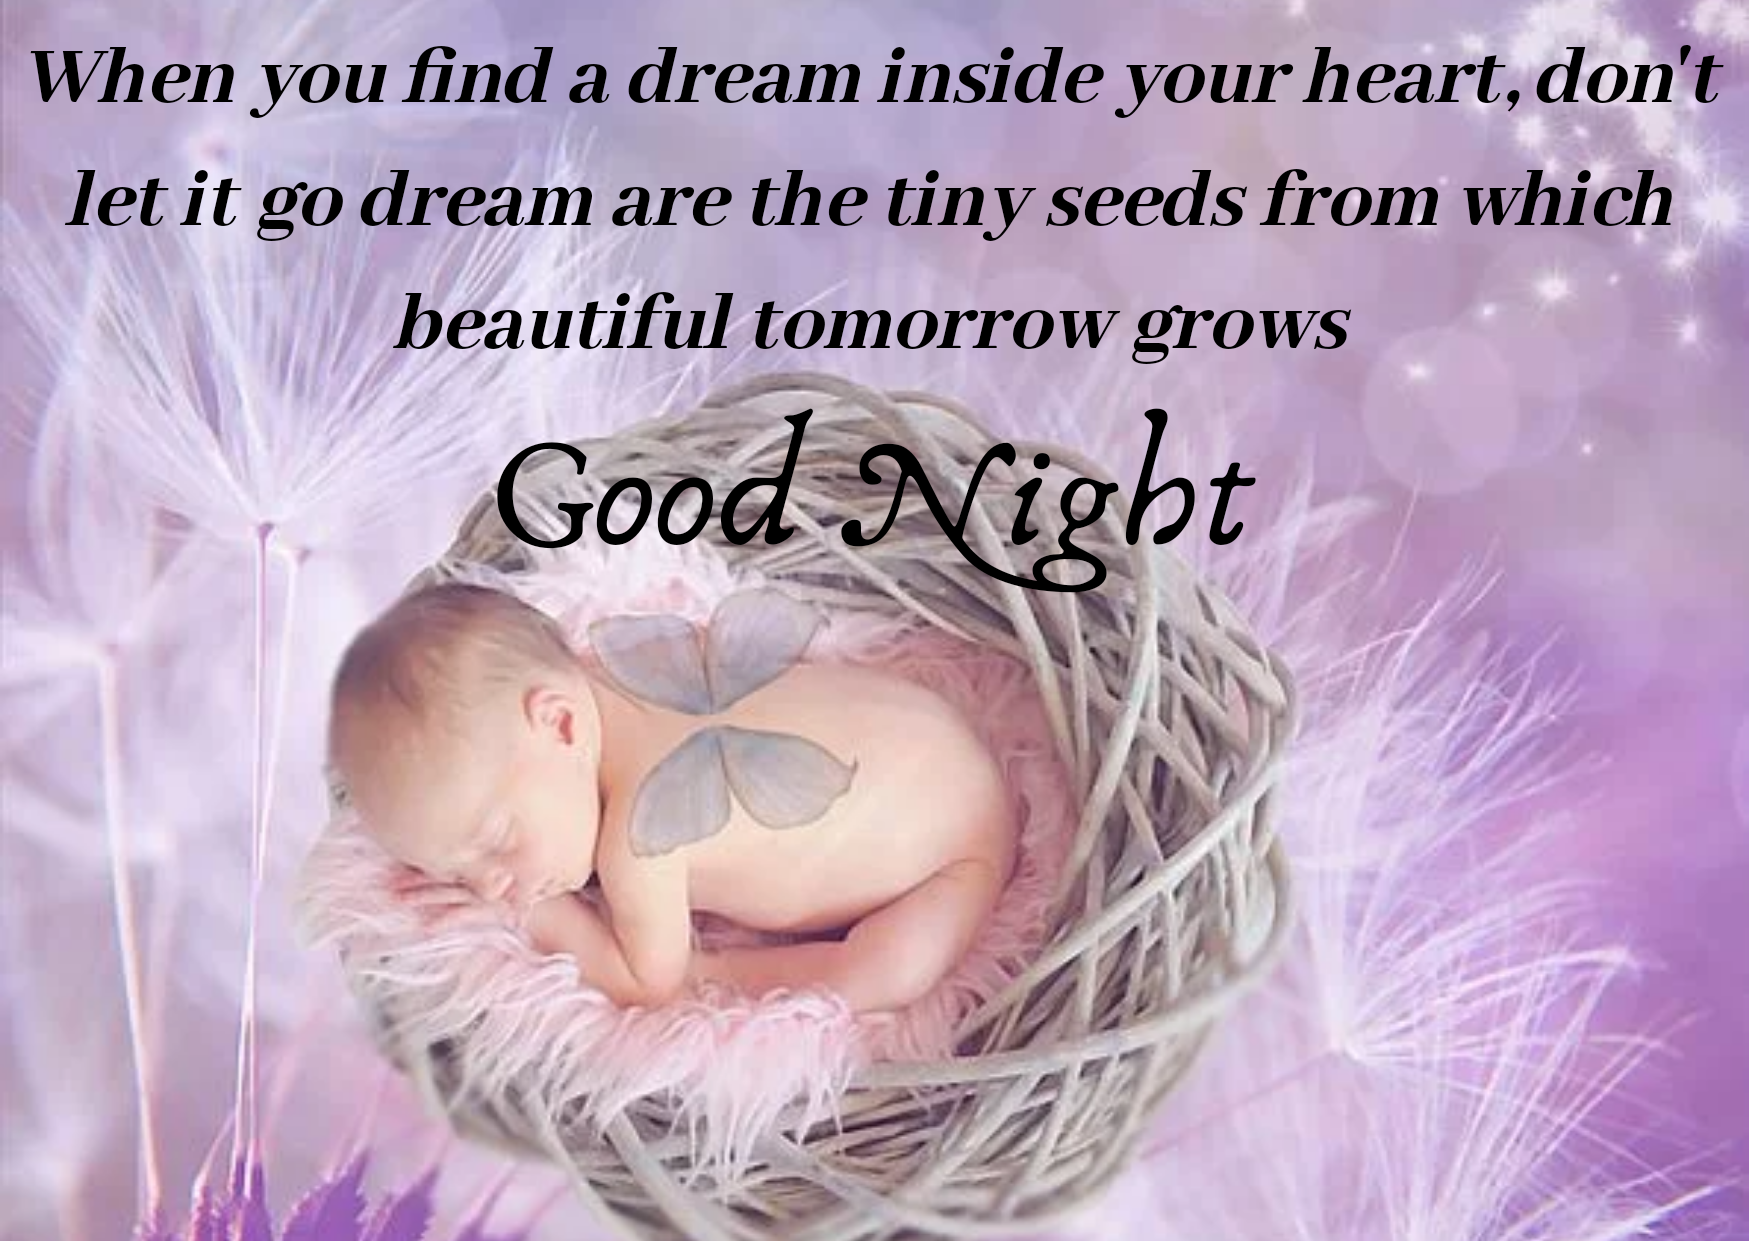 Good night status images, Best Beautiful Good Night English status, Good Night wishes massage, Good Night Images Picture, Photo, Quotes,